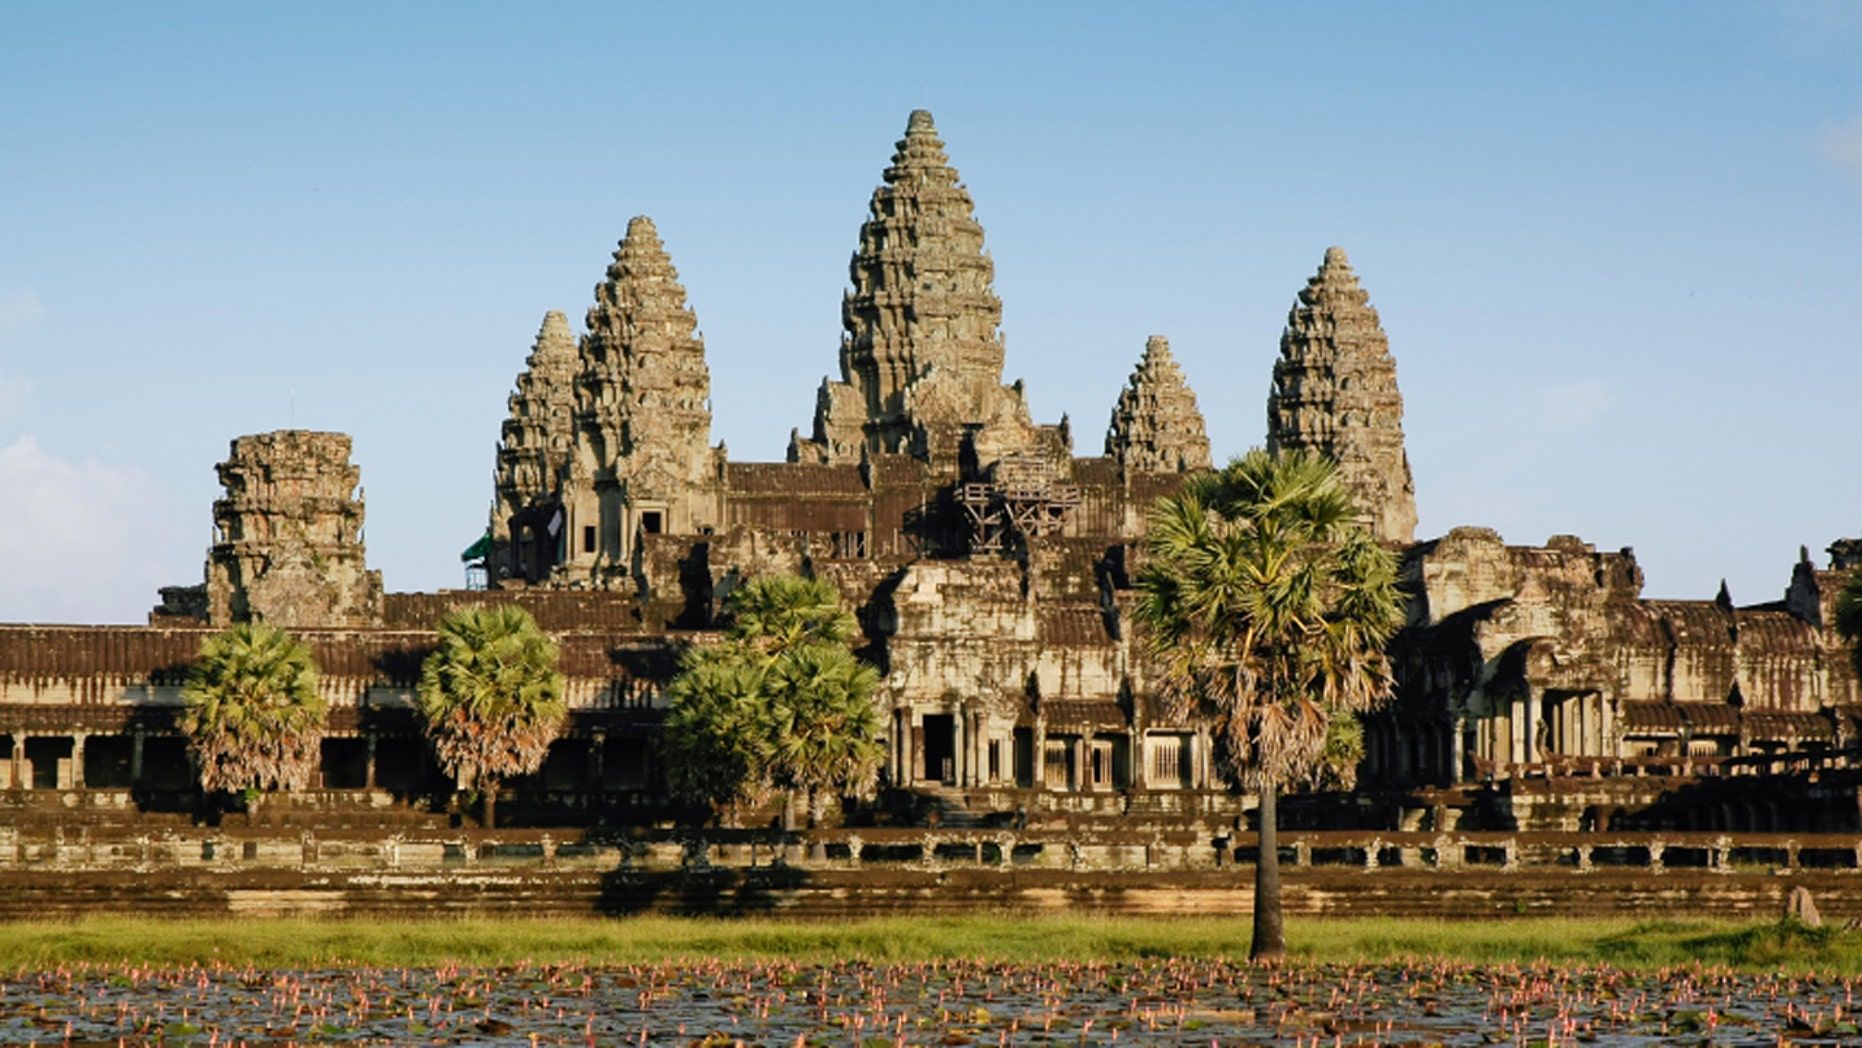 Angkor Wat has posted new code of conduct guidelines.